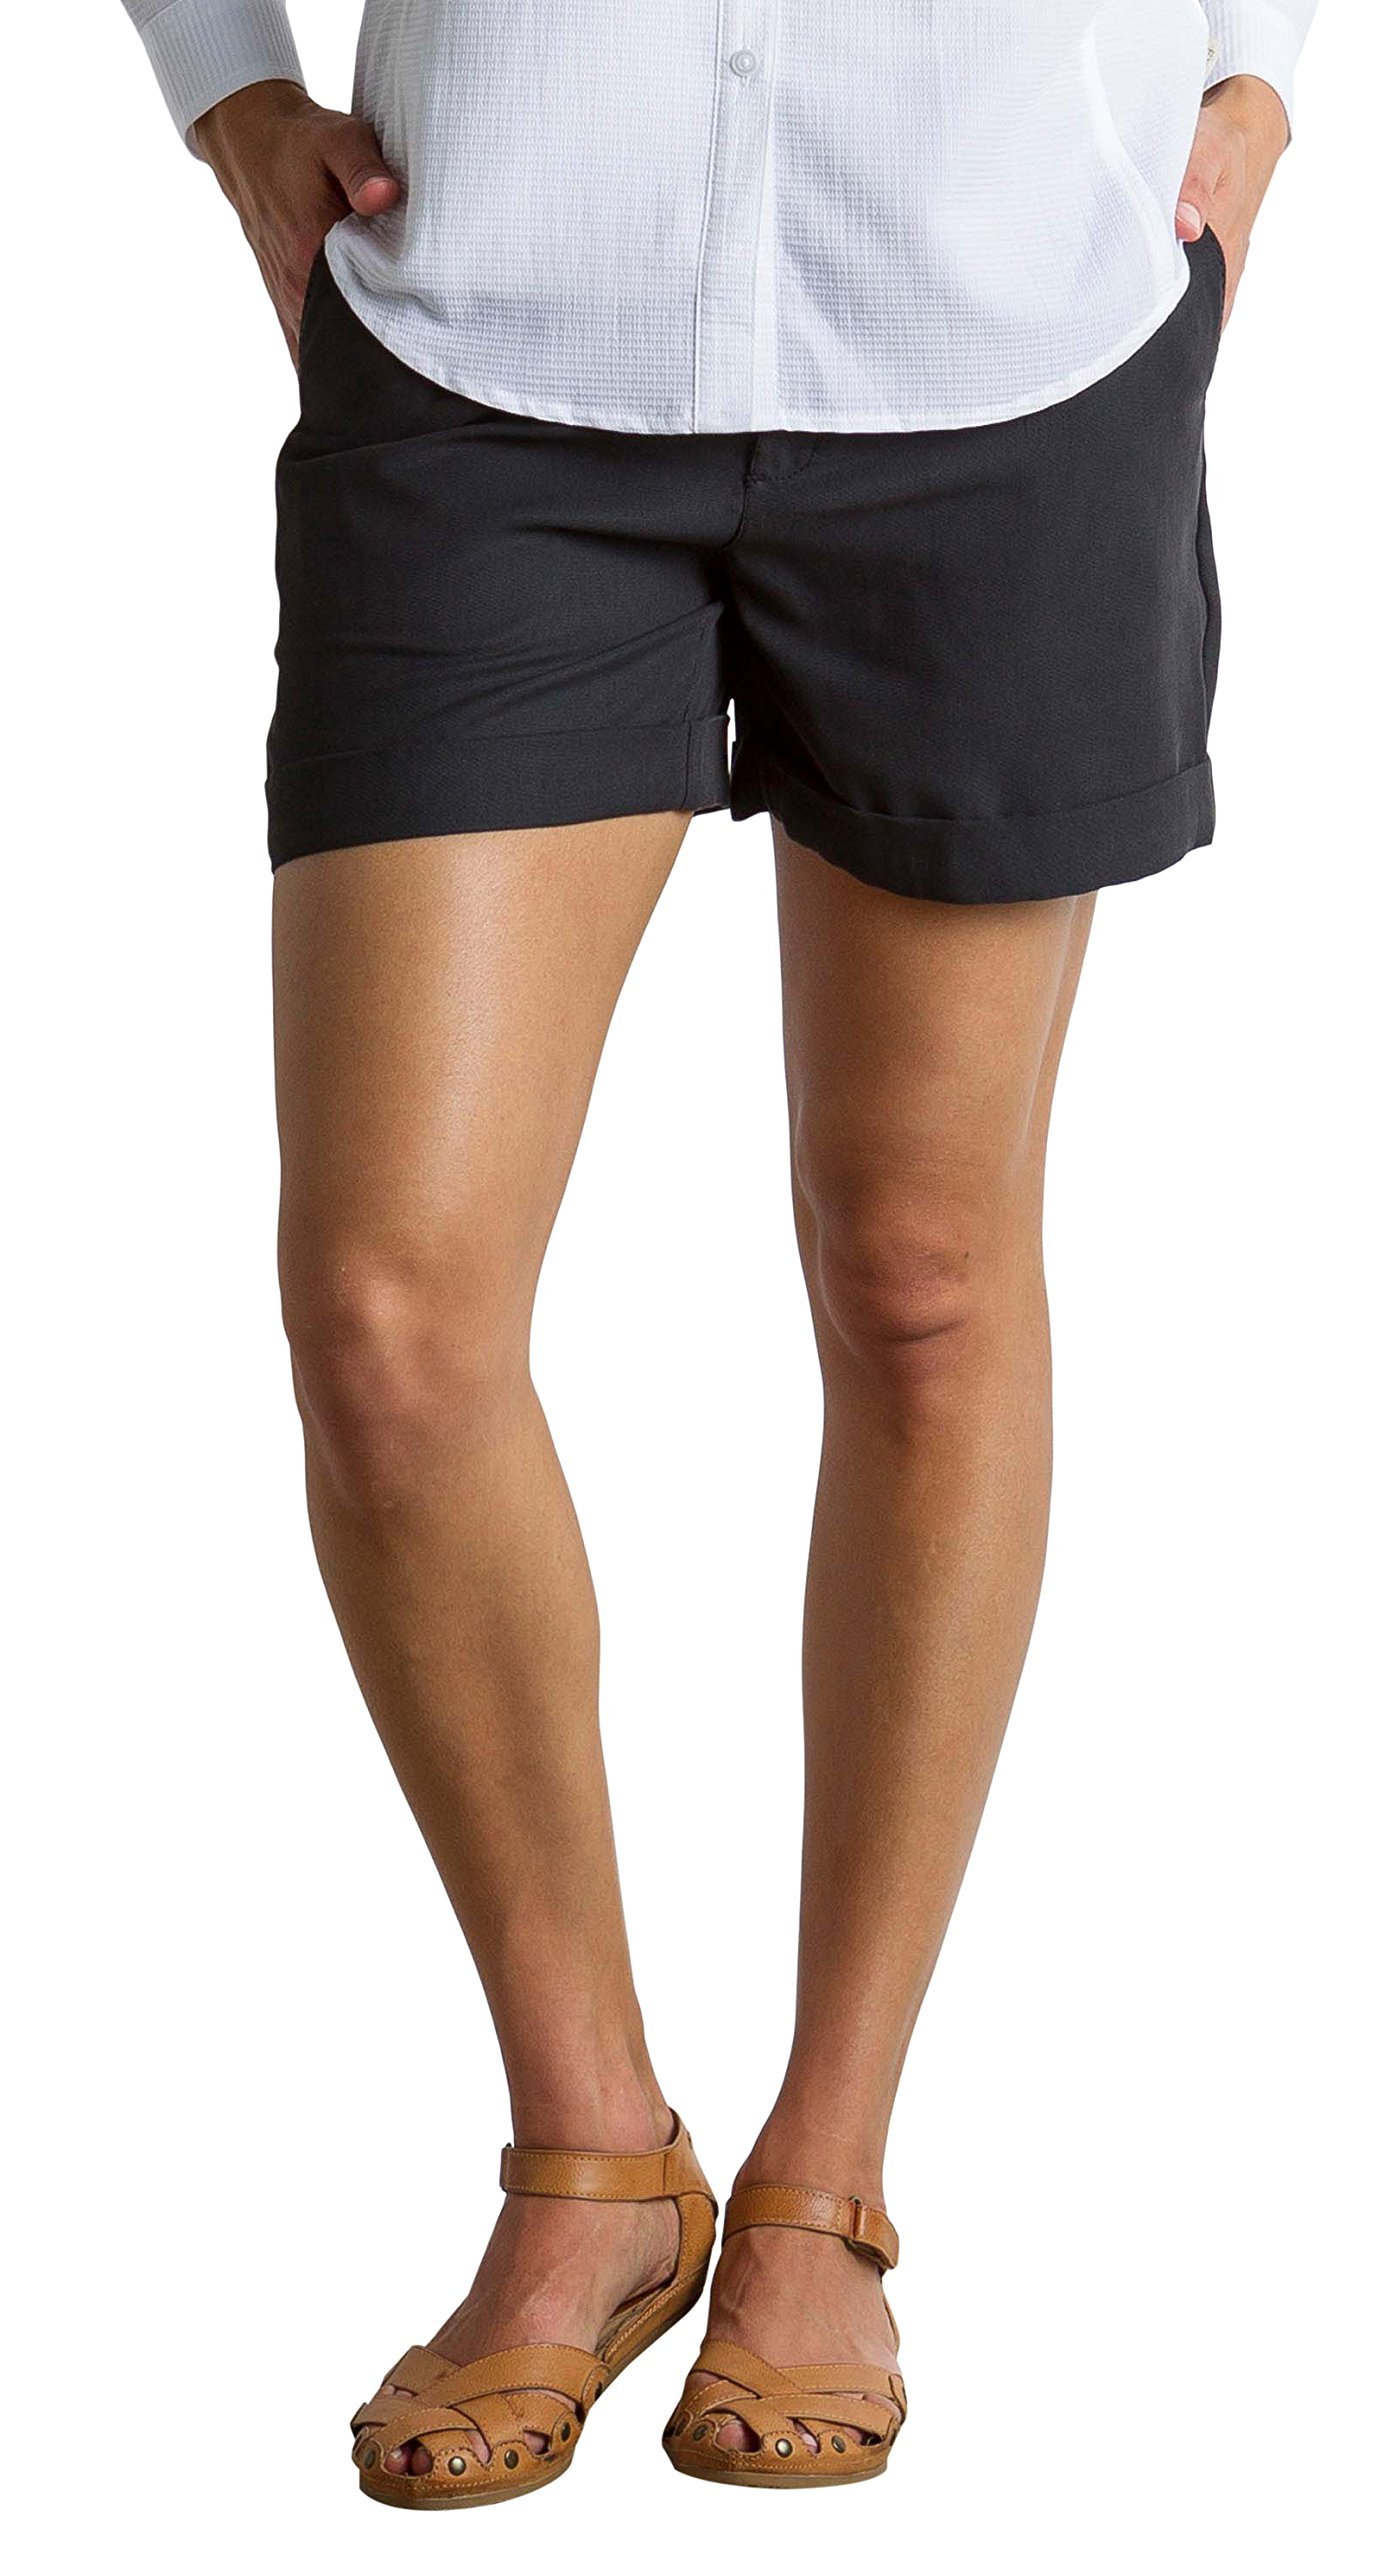 ExOfficio Women's Basilica Relaxed Fit Lightweight Shorts, Black, 8 by ExOfficio